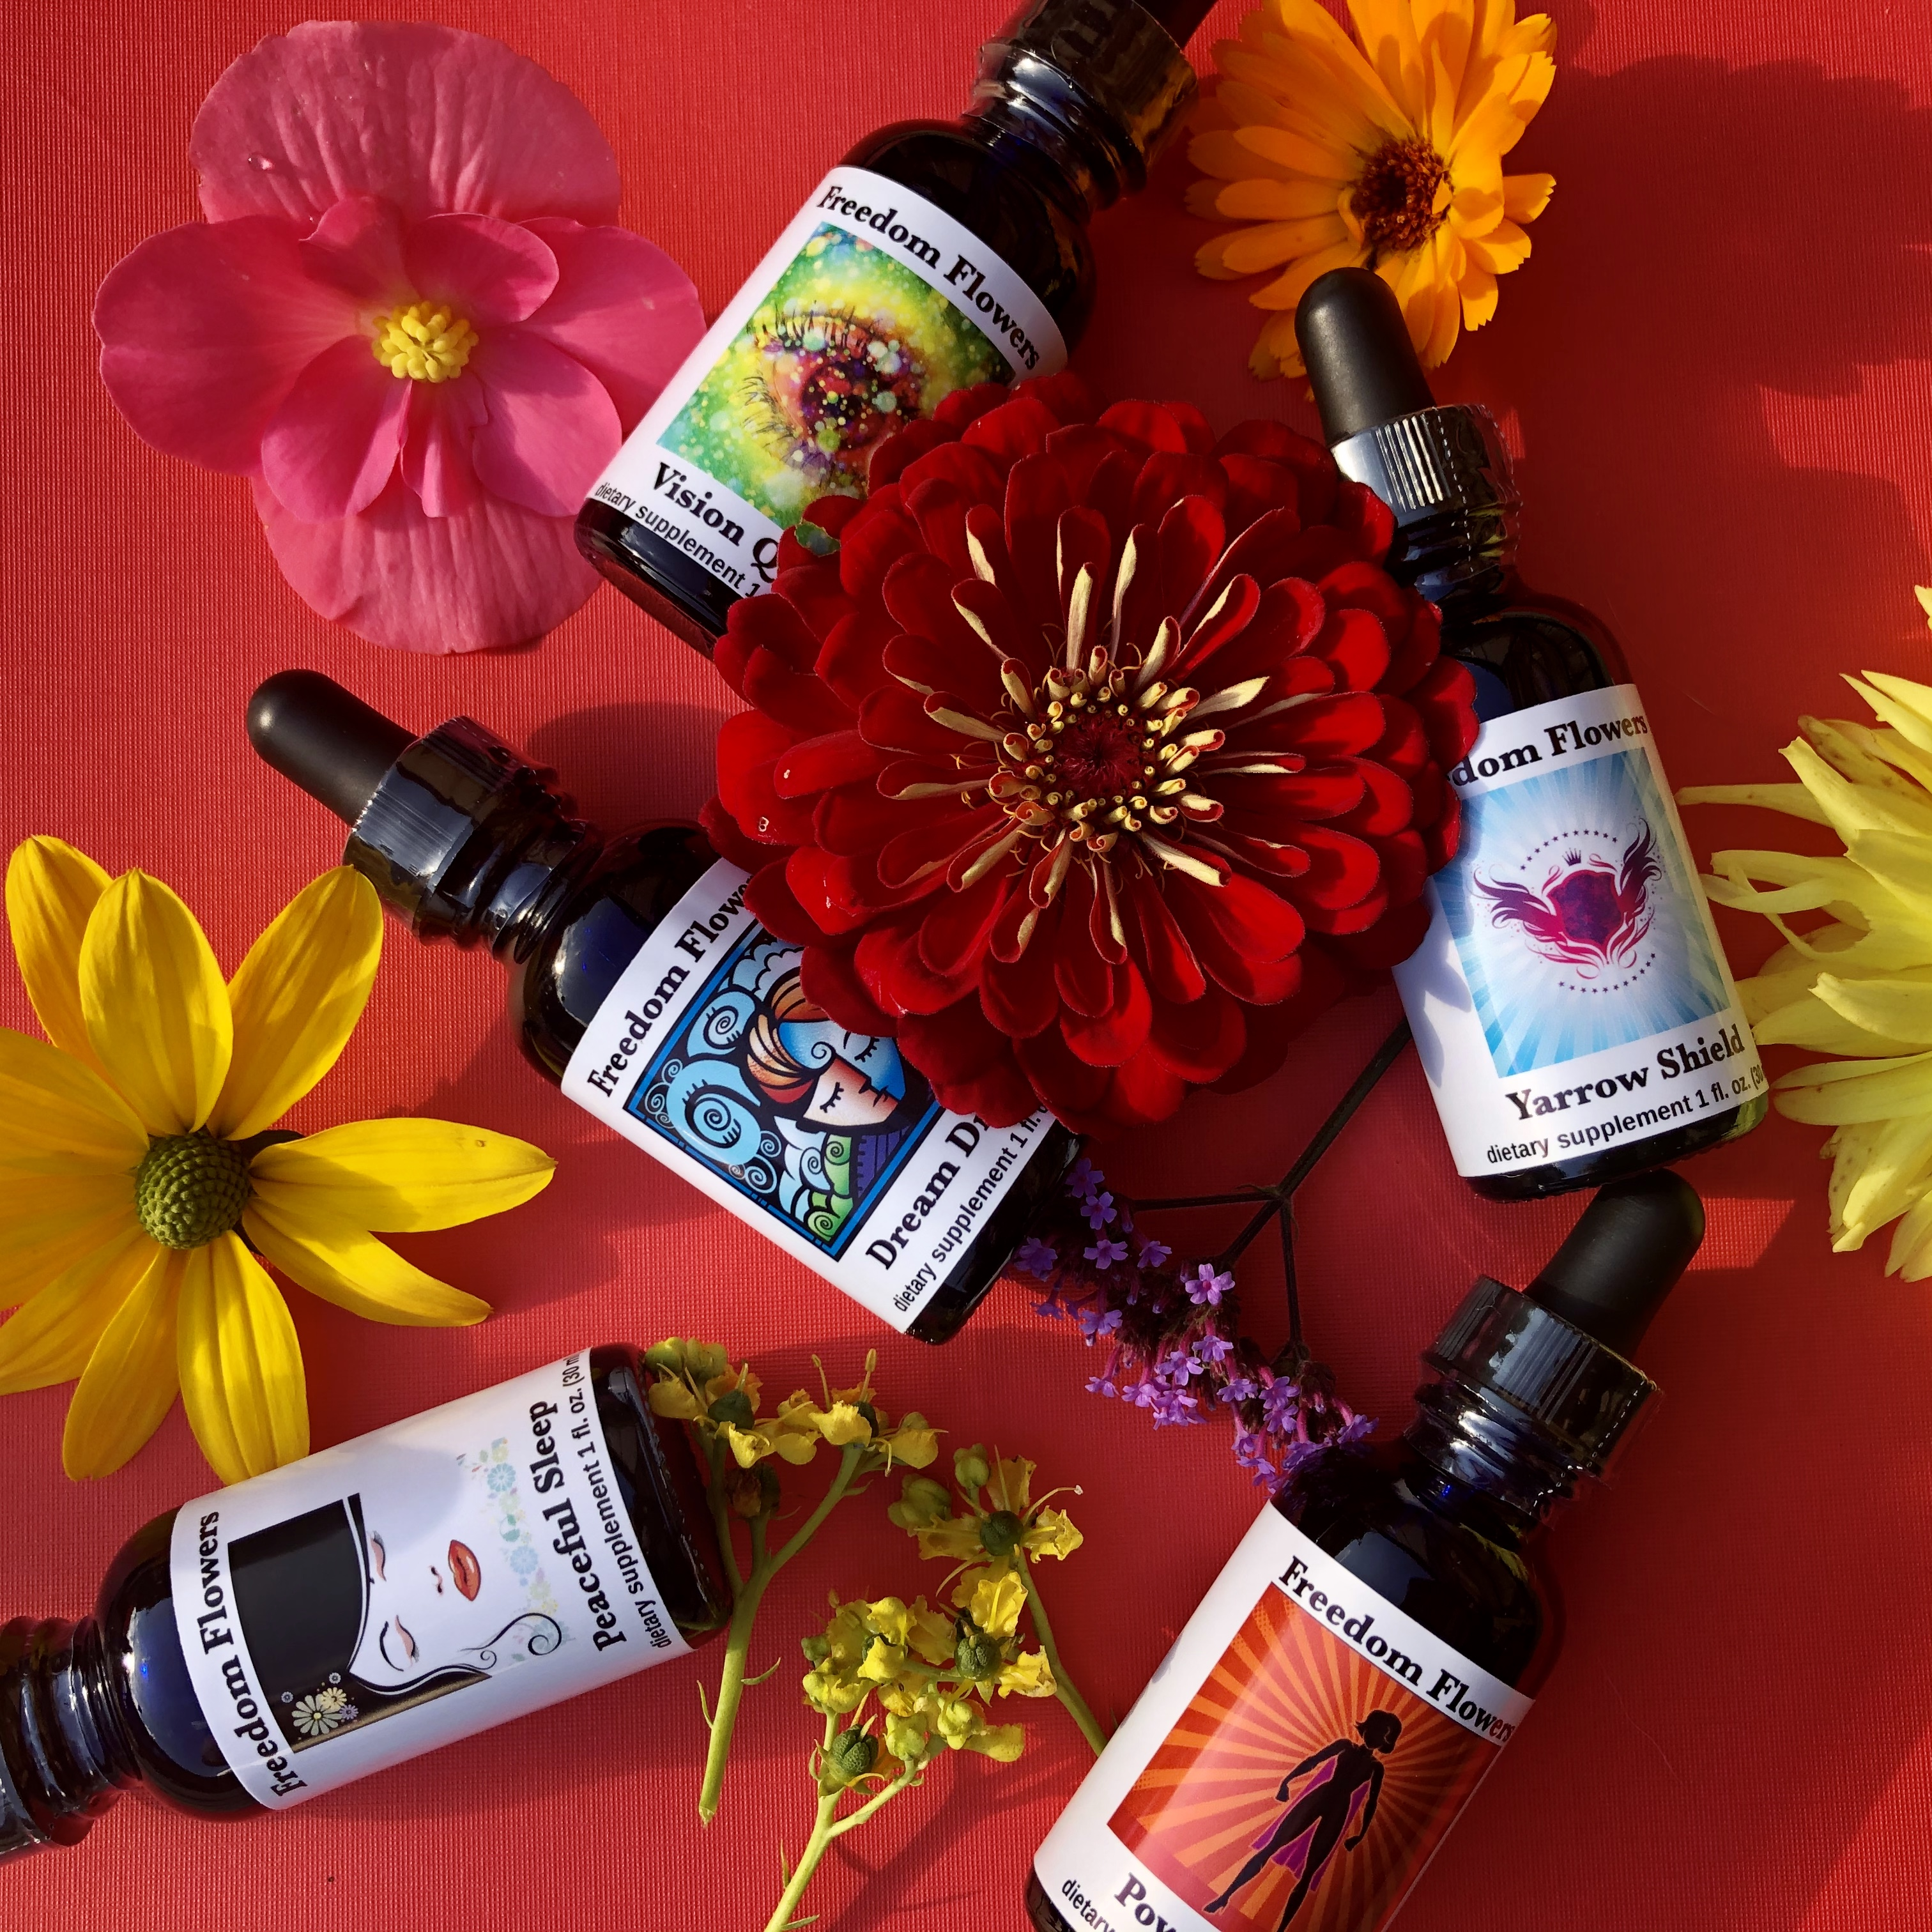 Bottles of flower essence blends with flowers strewn on red background